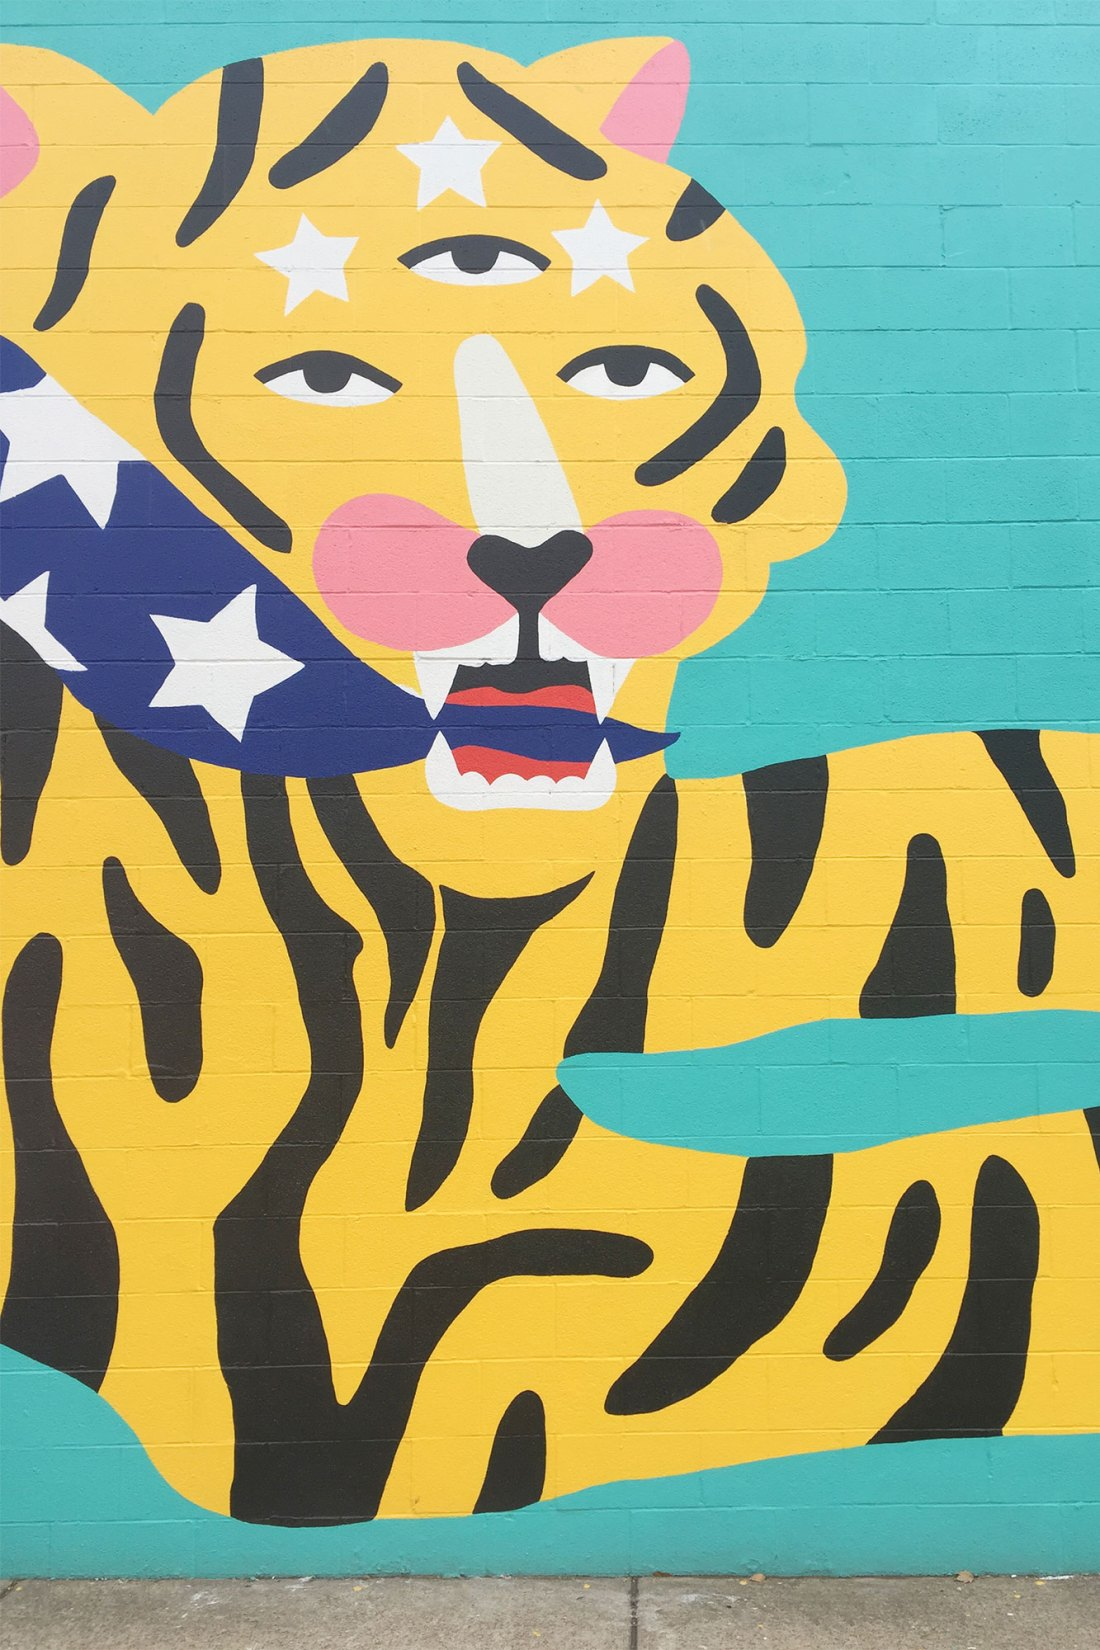 Mural of a tiger chasing a bird on side of building